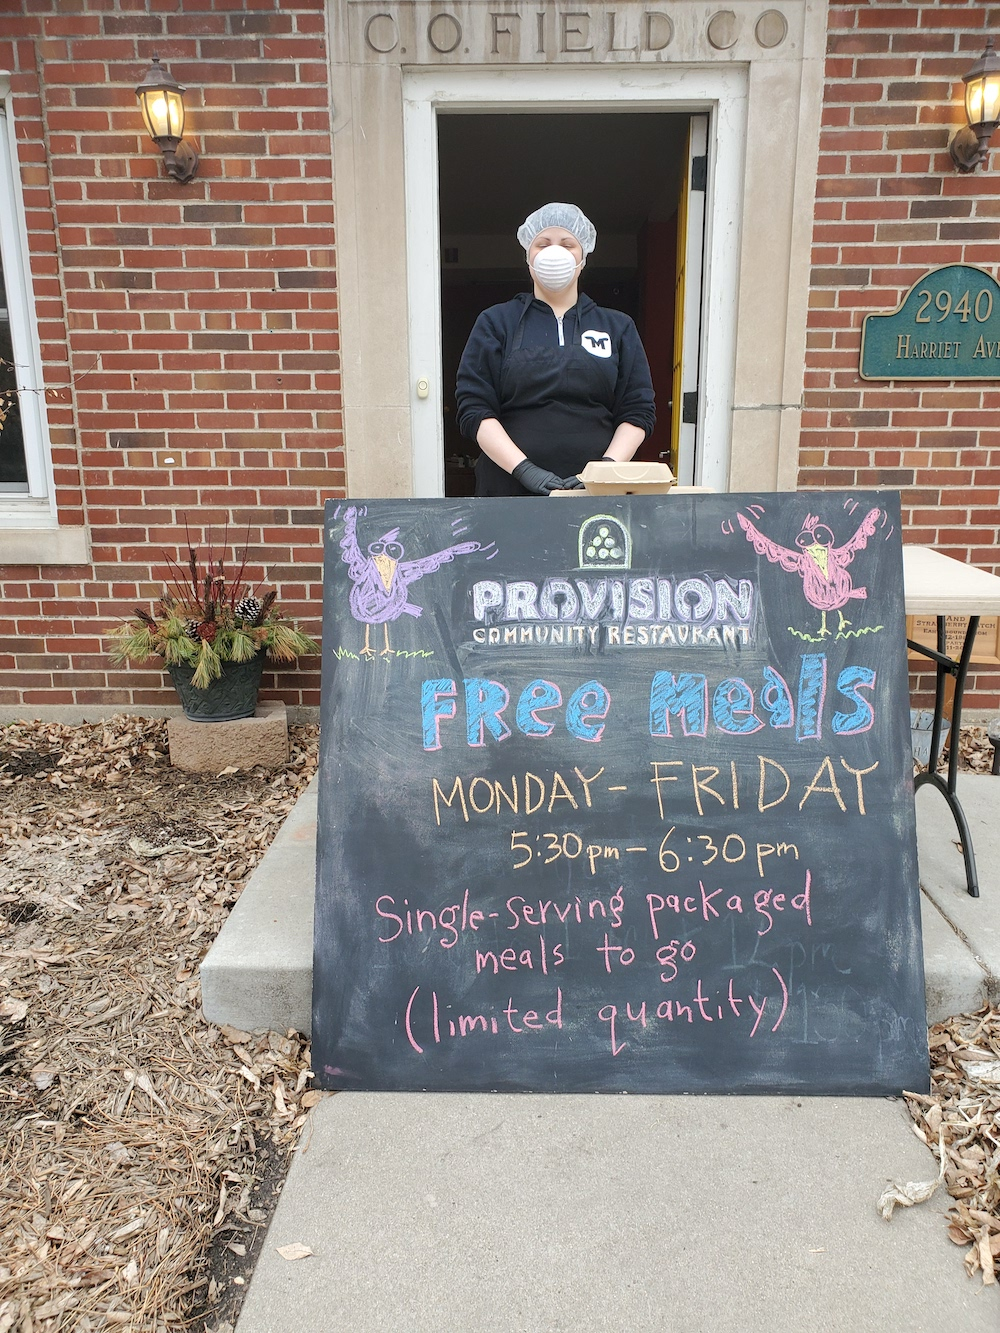 Provision Community Restaurant chef Heather Mady